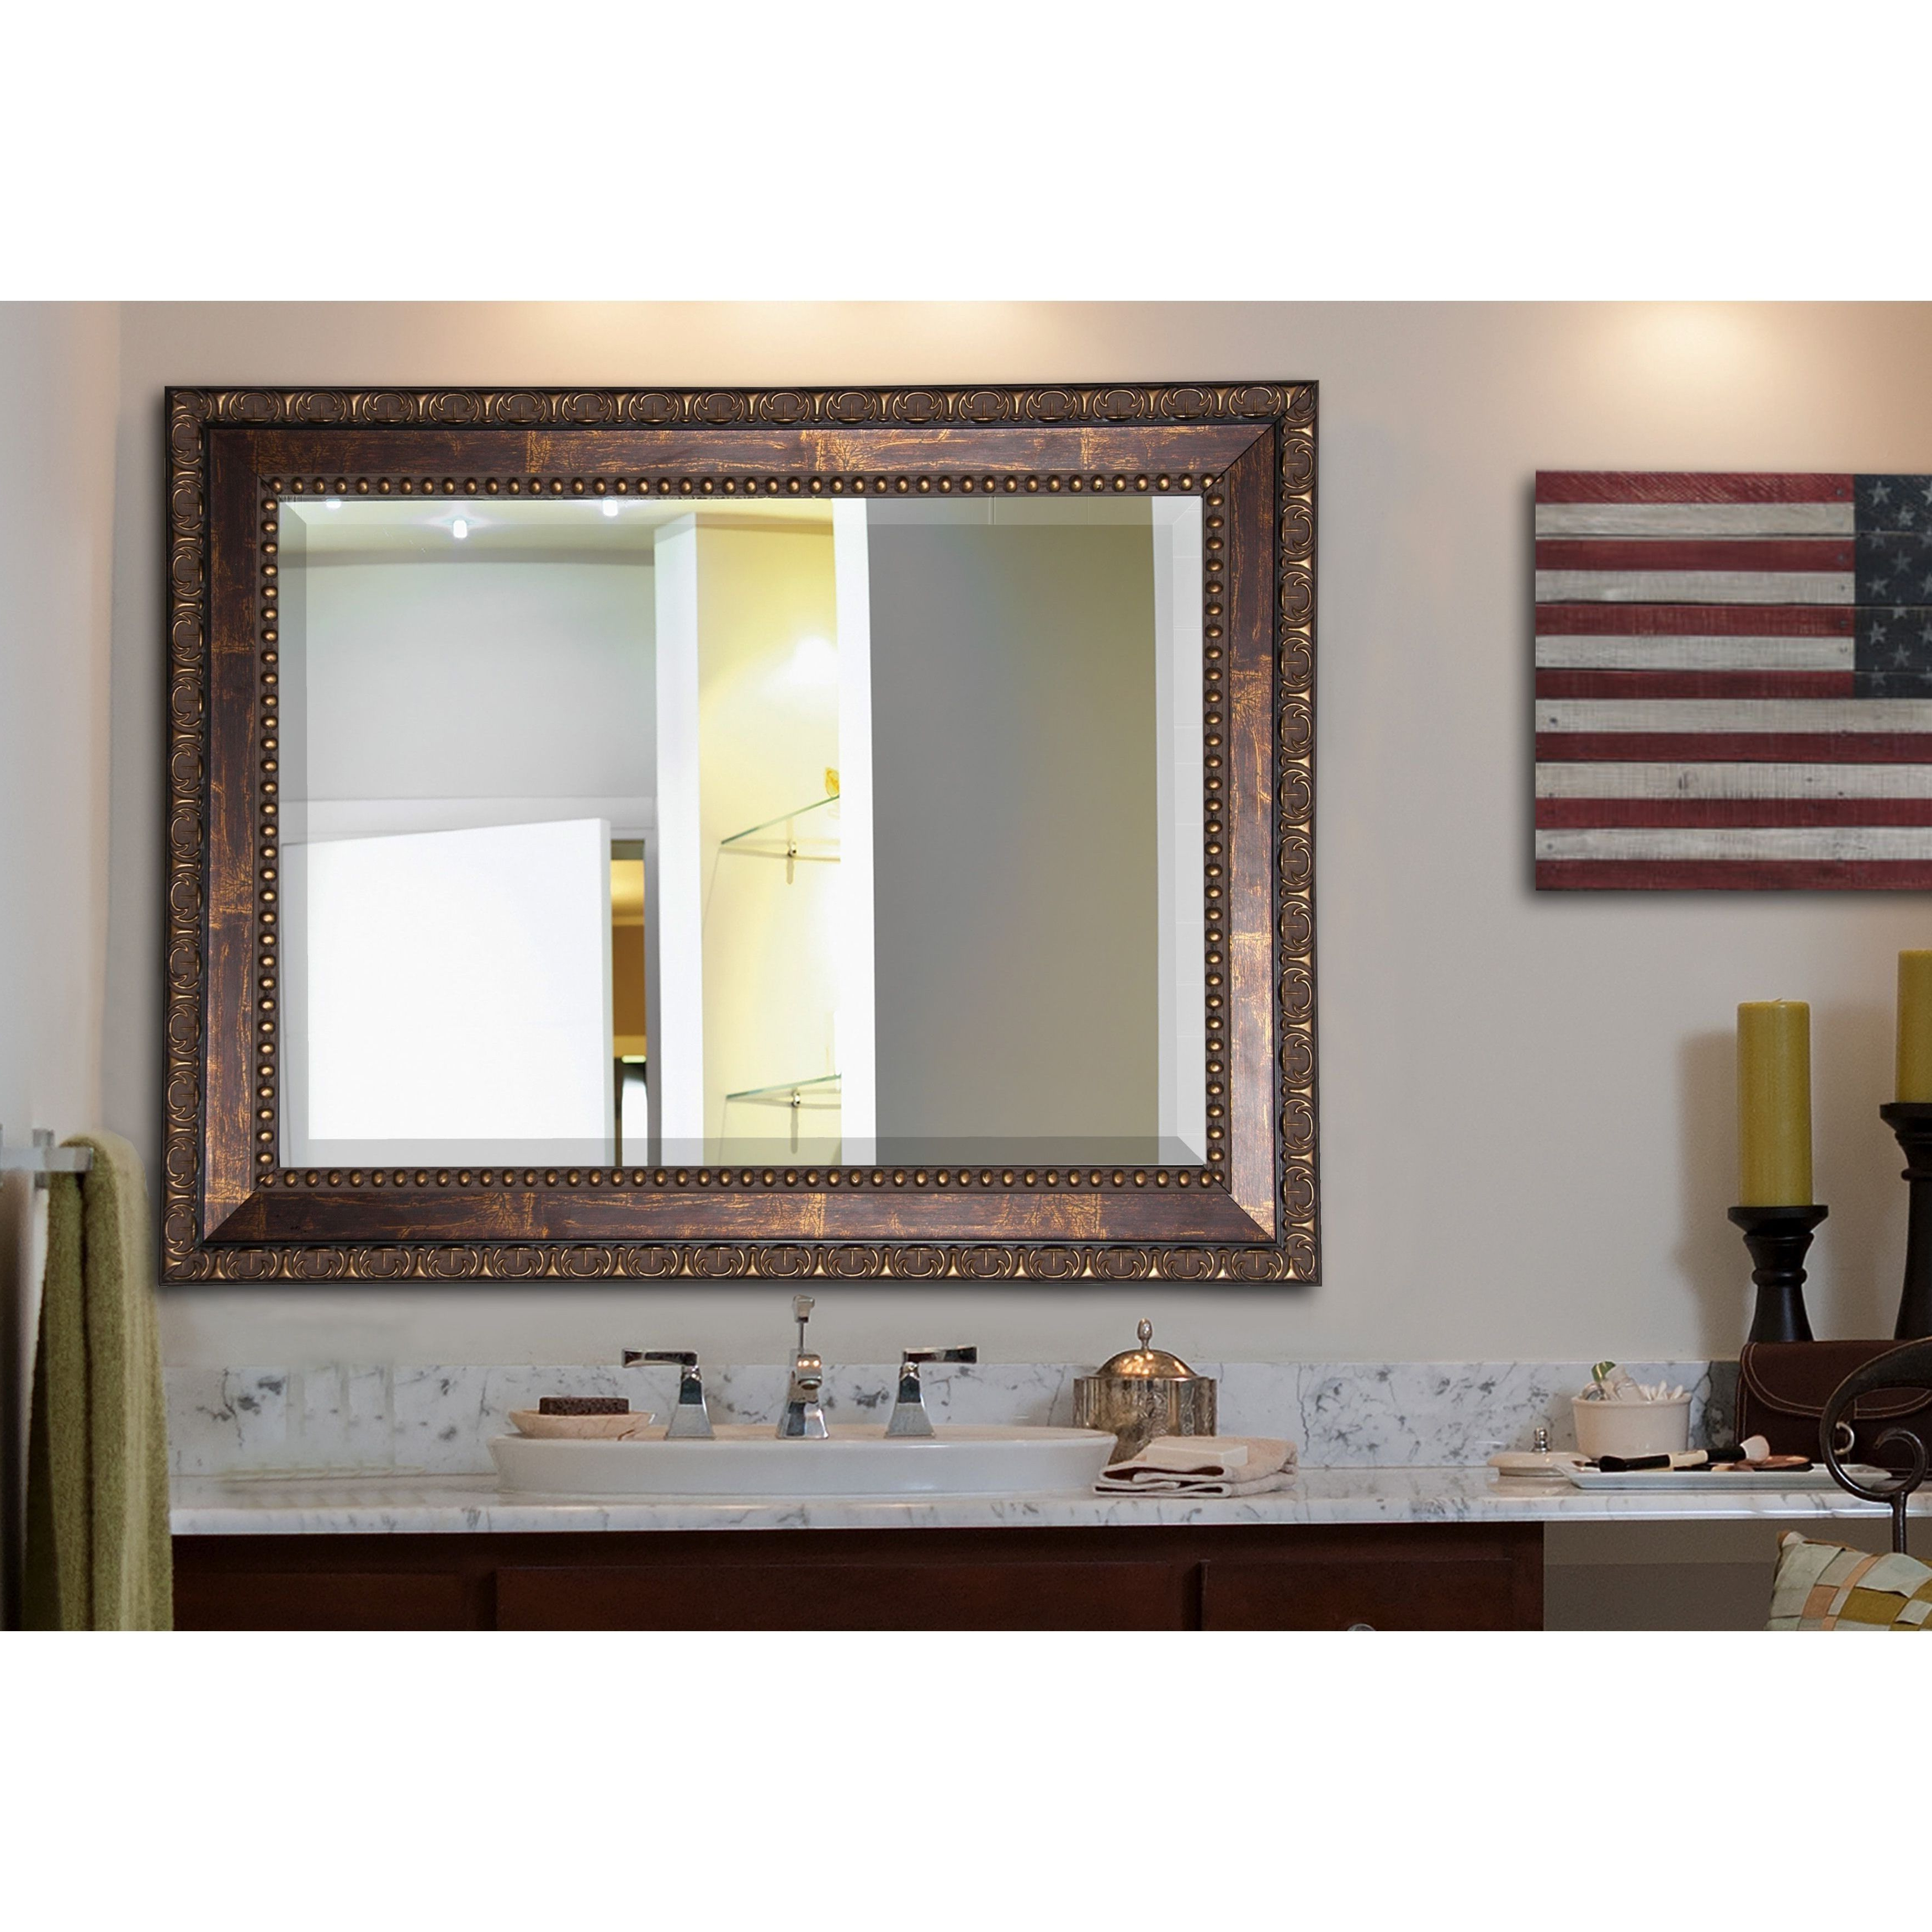 Most Recent Pine Canopy American Made Rayne Roman Bronze Wall/ Vanity Mirror For American Made Accent Wall Mirrors (View 15 of 20)